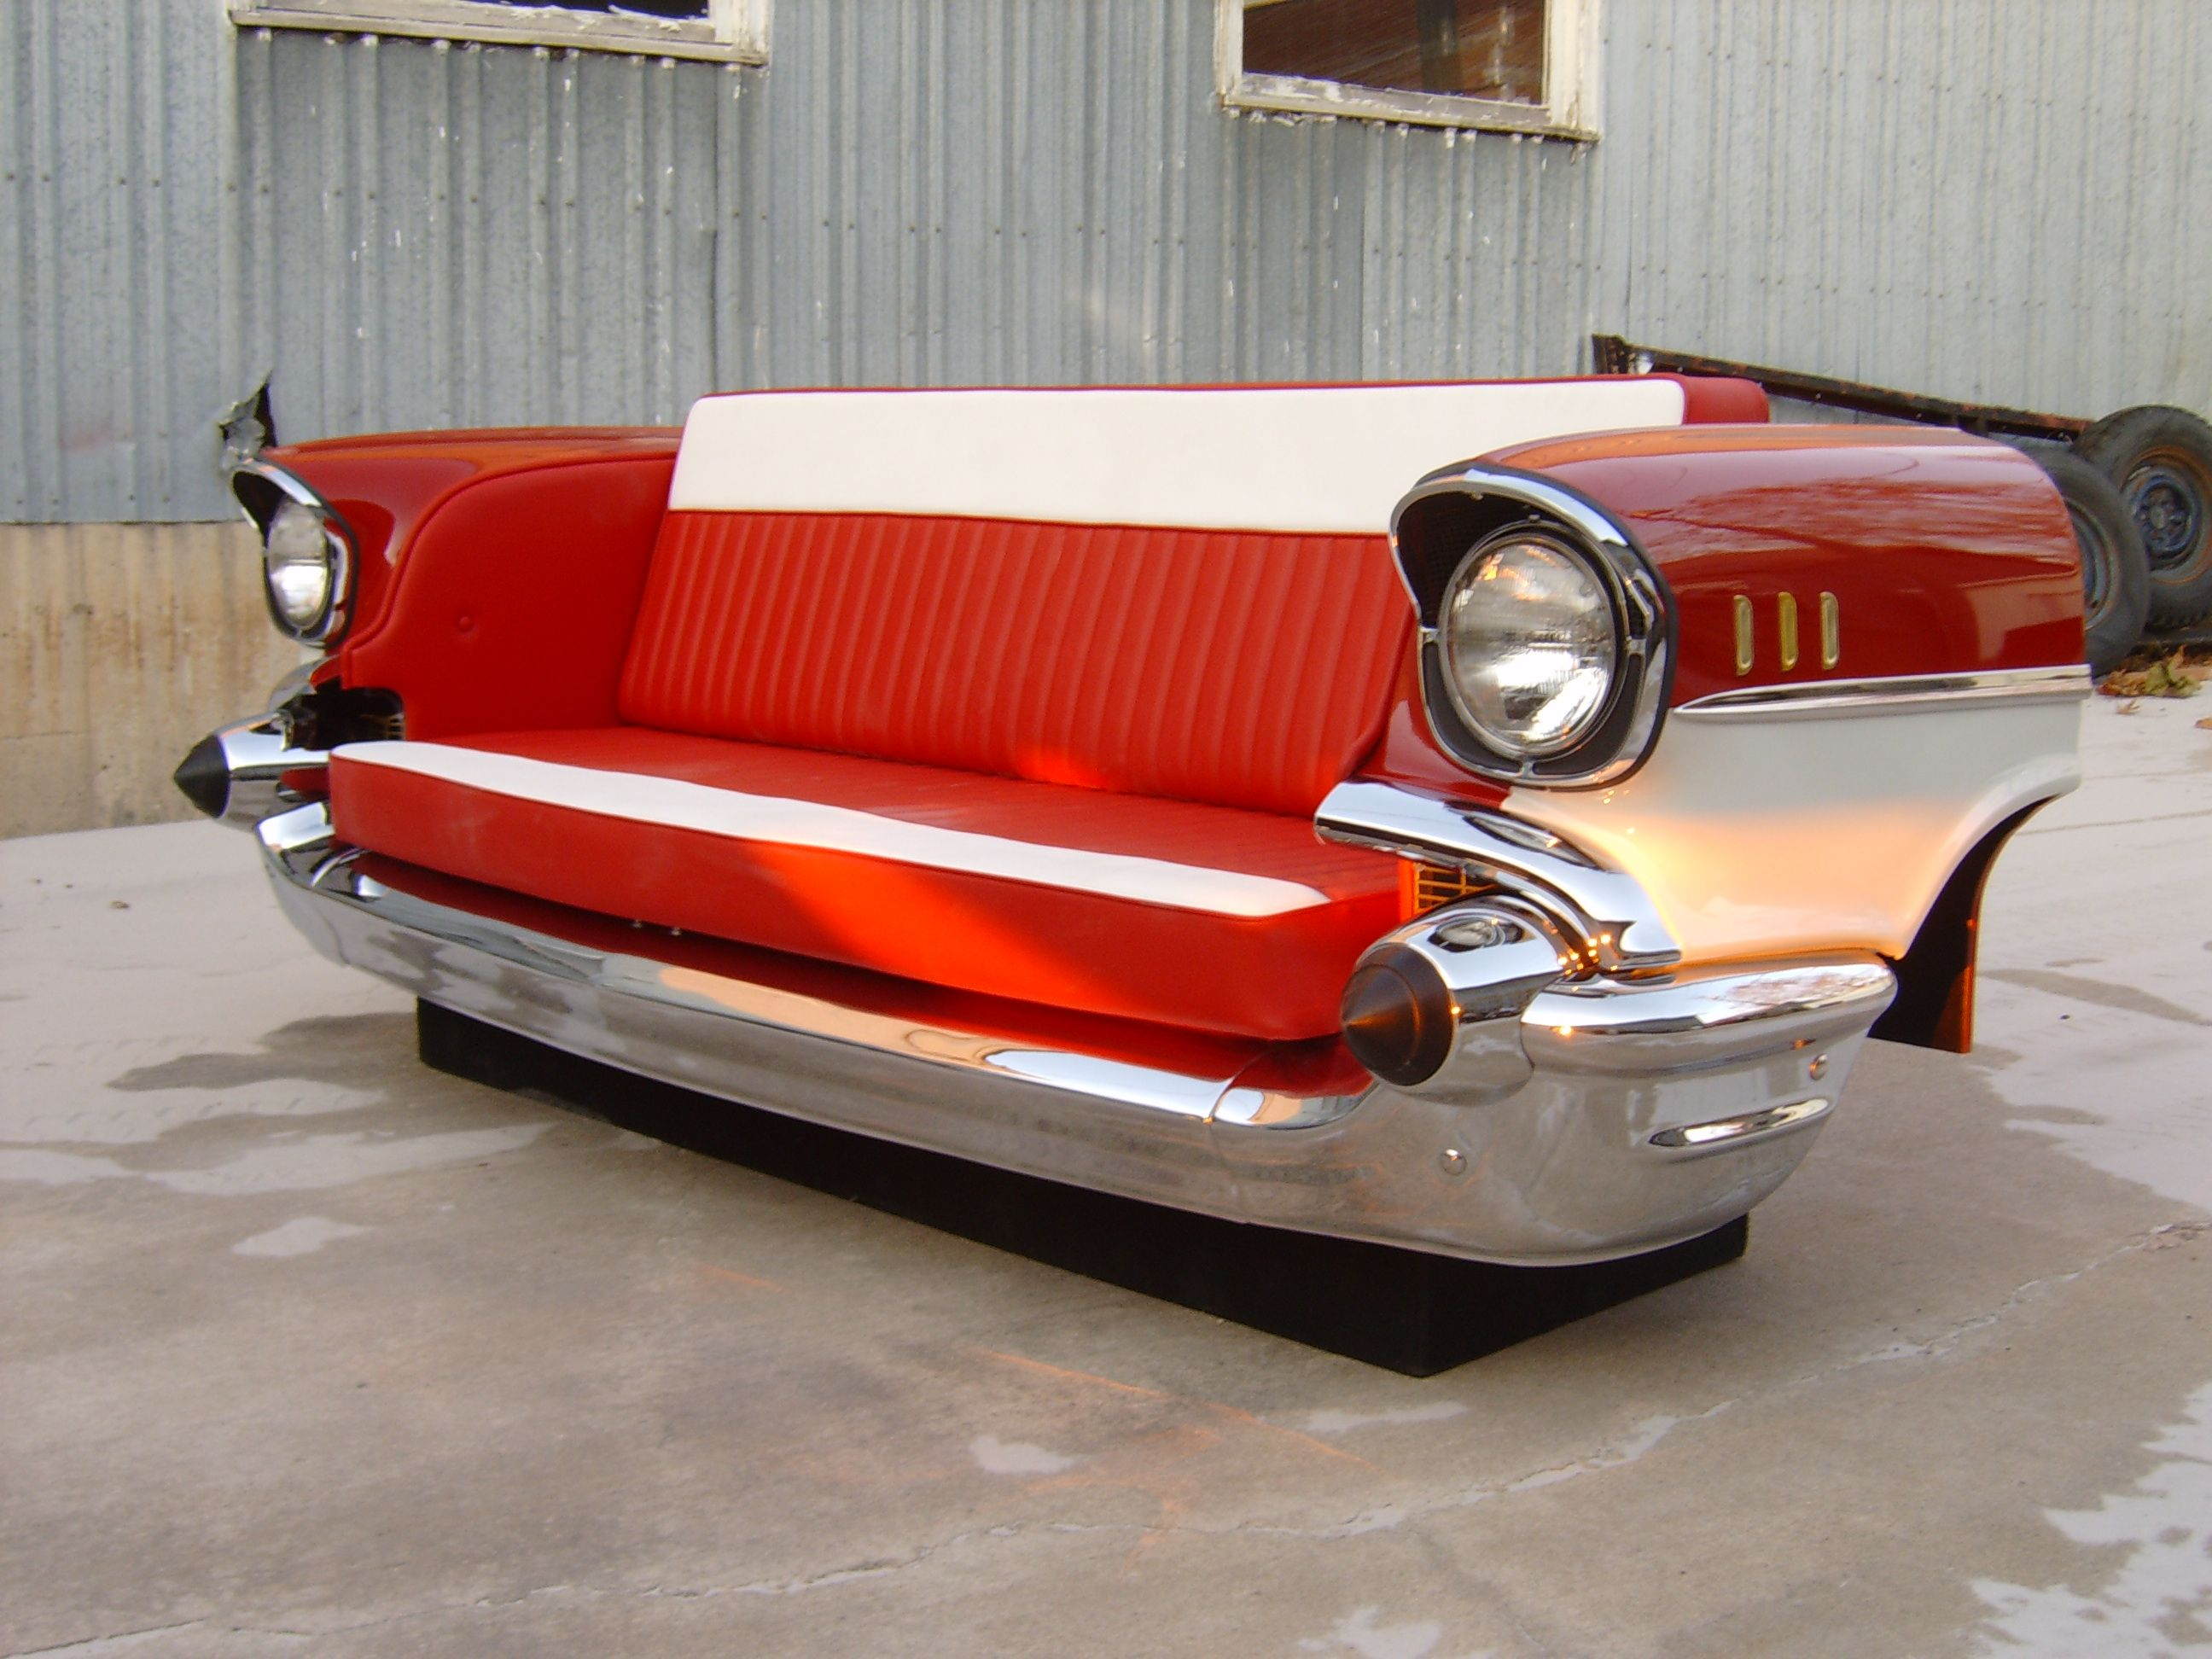 57 Chevy front end couch | Automotive furniture, Classic ...